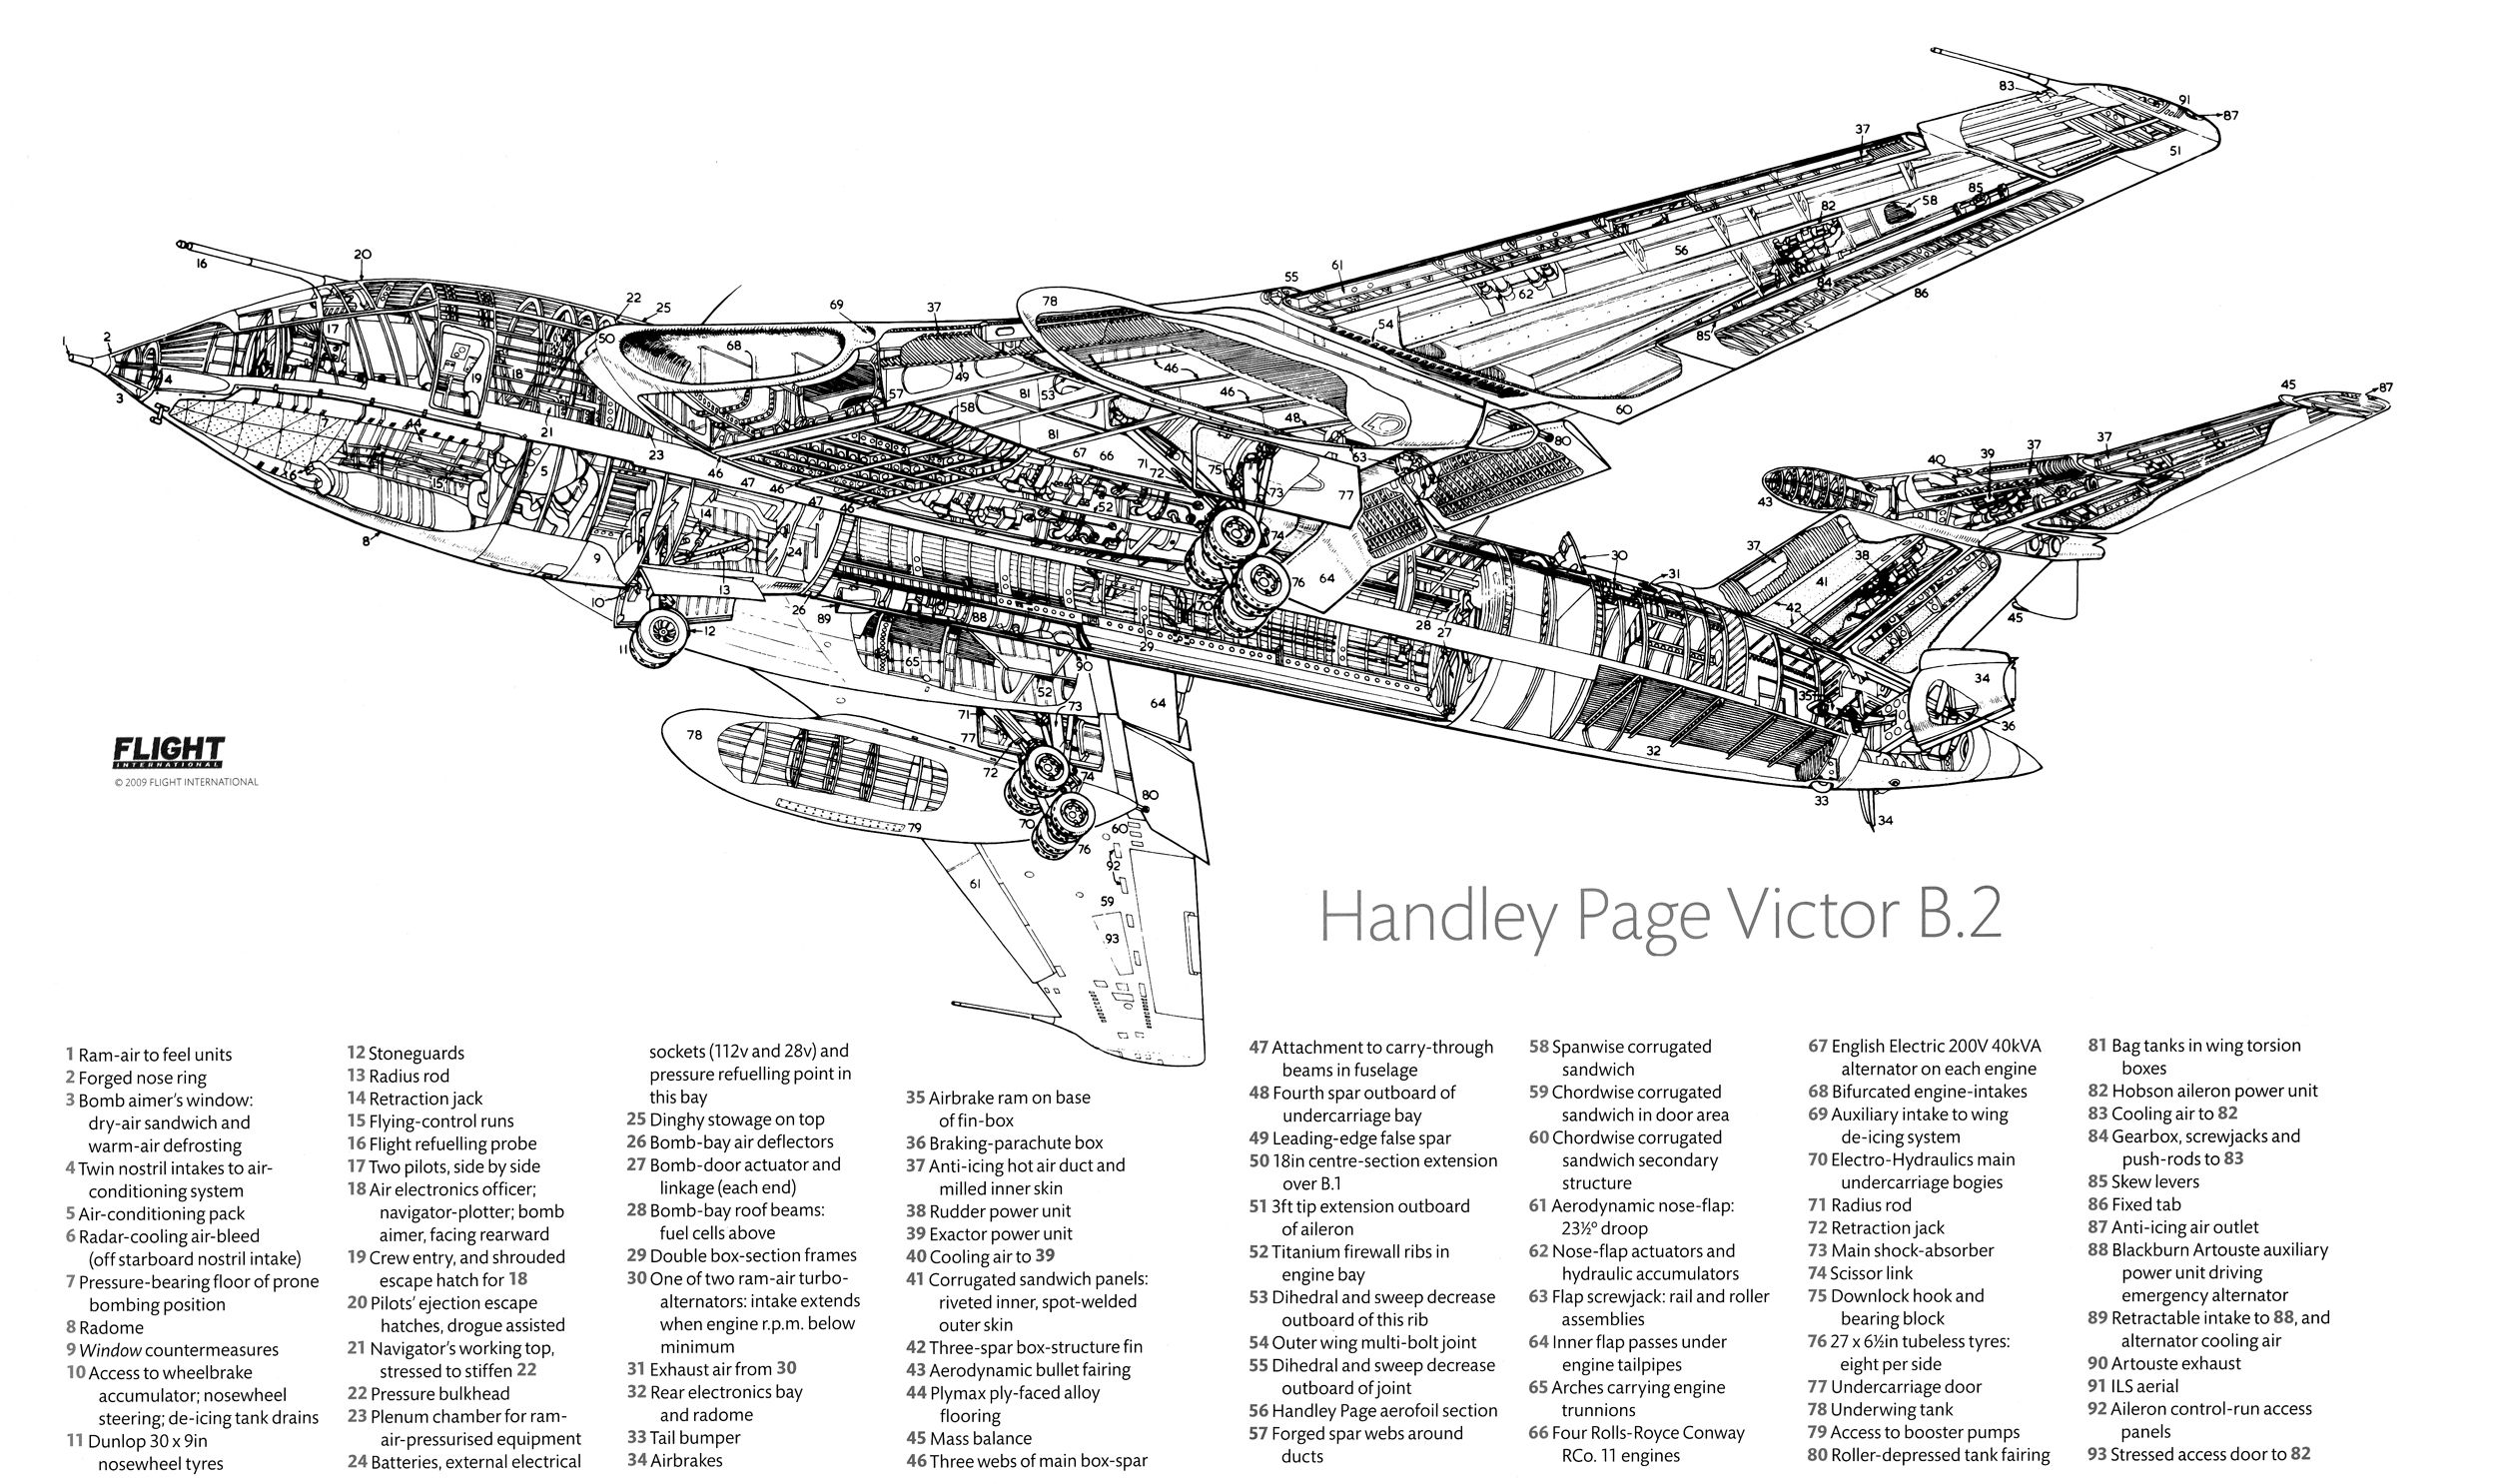 Handley Page Victor Cutaways